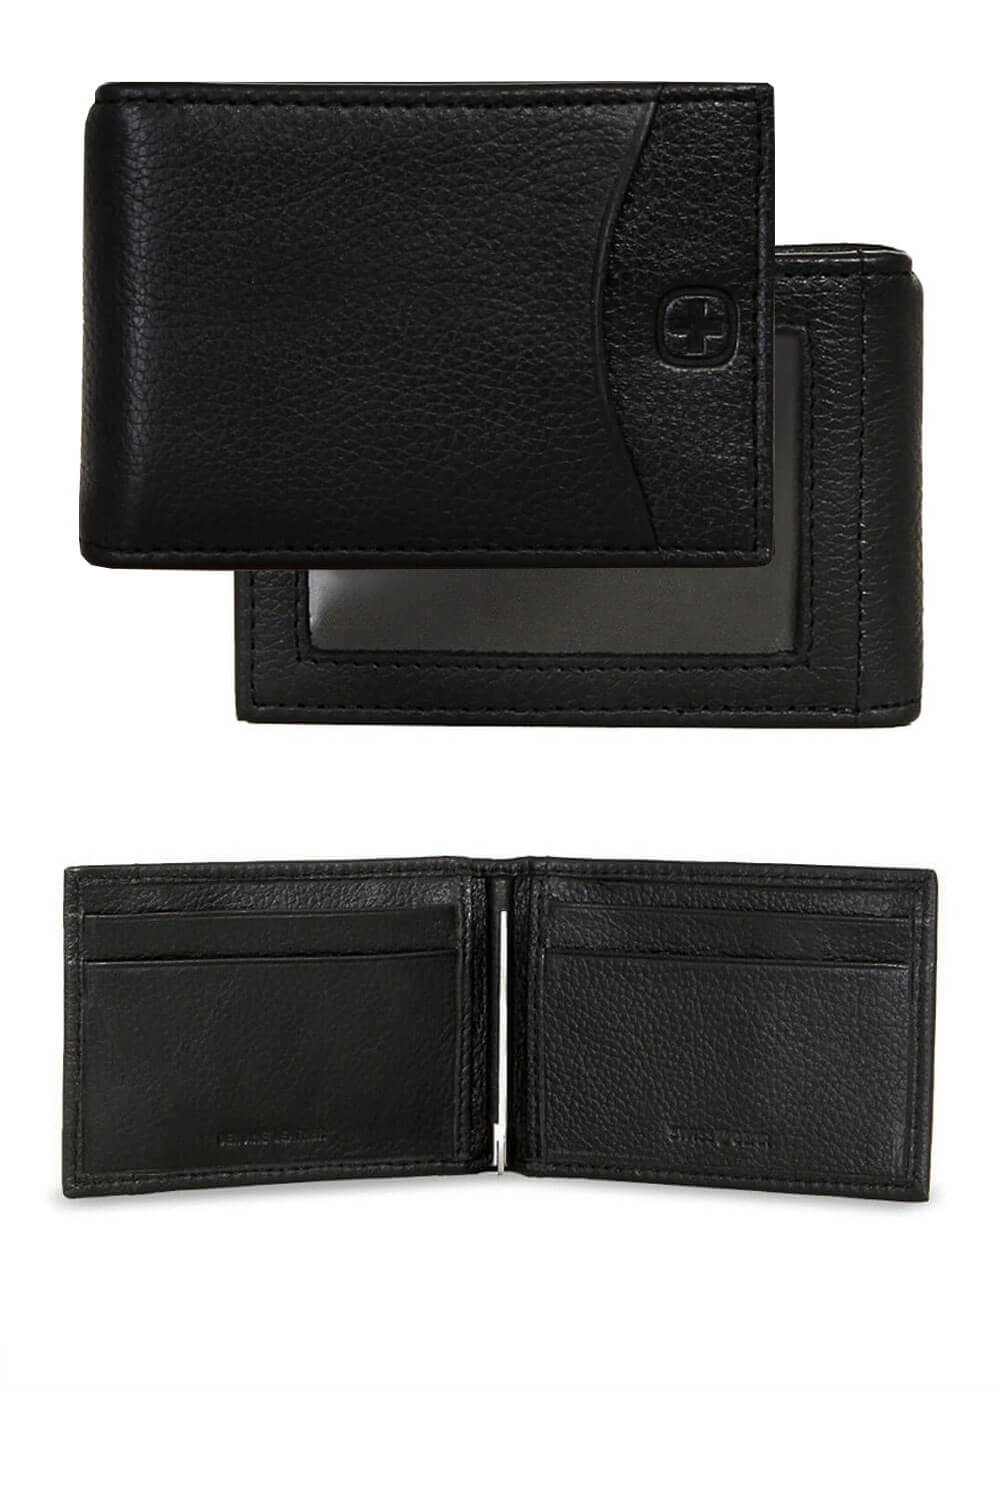 Basal Slimfold Wallet with Cash Clip – Black